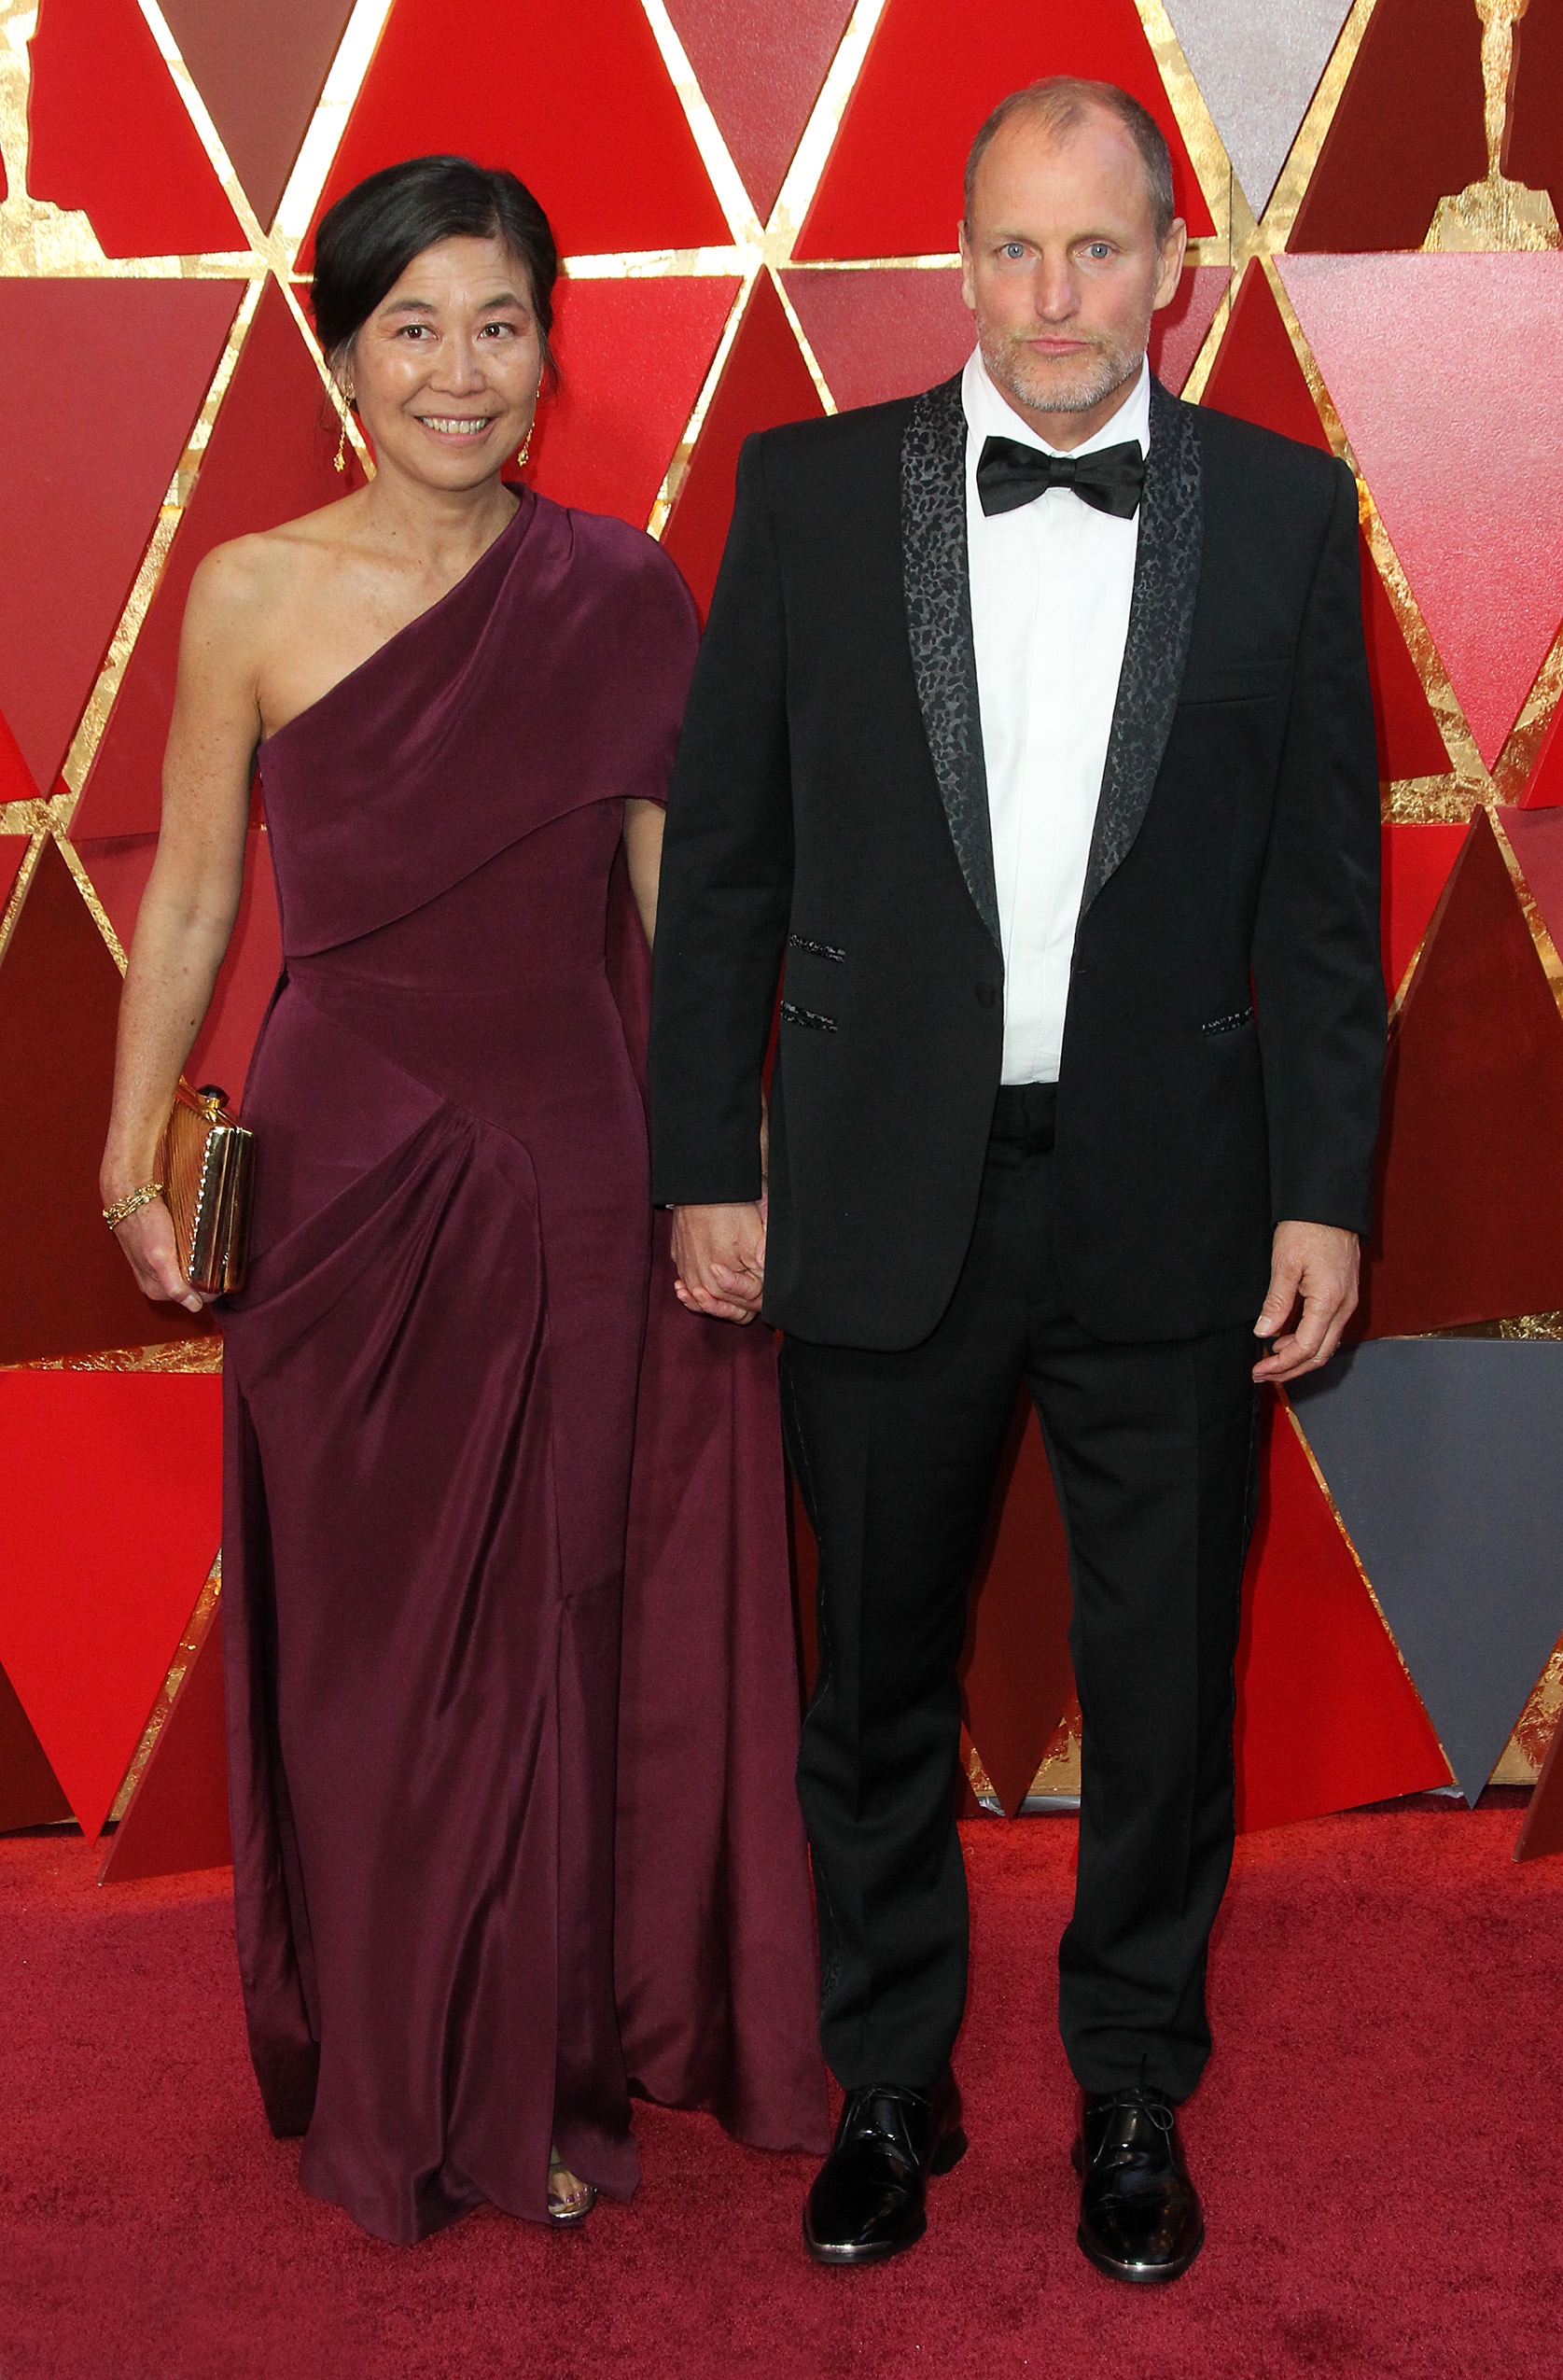 Laura Louie and Woody Harrelson{&amp;nbsp;}arrive at the 90th Annual Academy Awards (Oscars) held at the Dolby Theater in Hollywood, California. (Image: Adriana M. Barraza/WENN.com)<p></p>